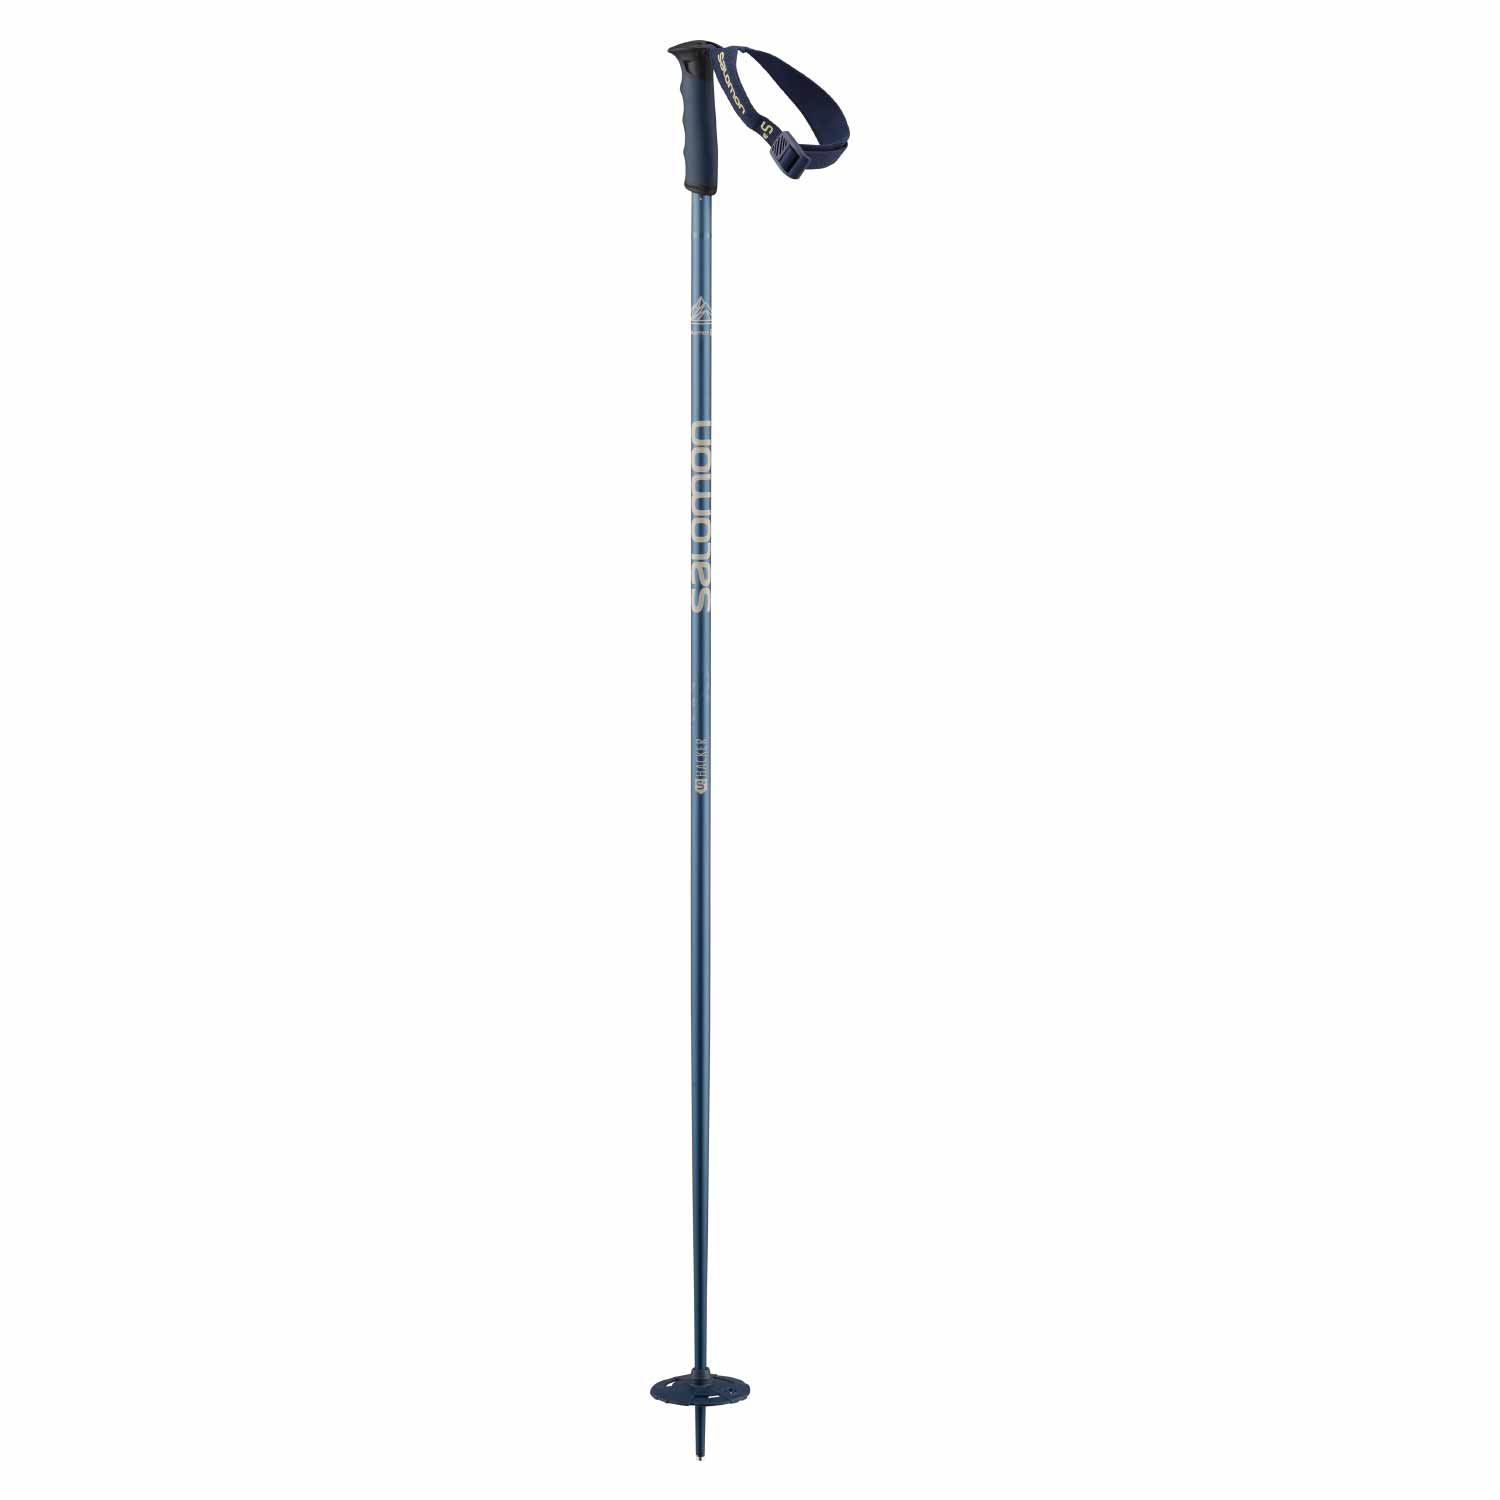 Salomon Hacker S3 Ski Pole Blue 2020